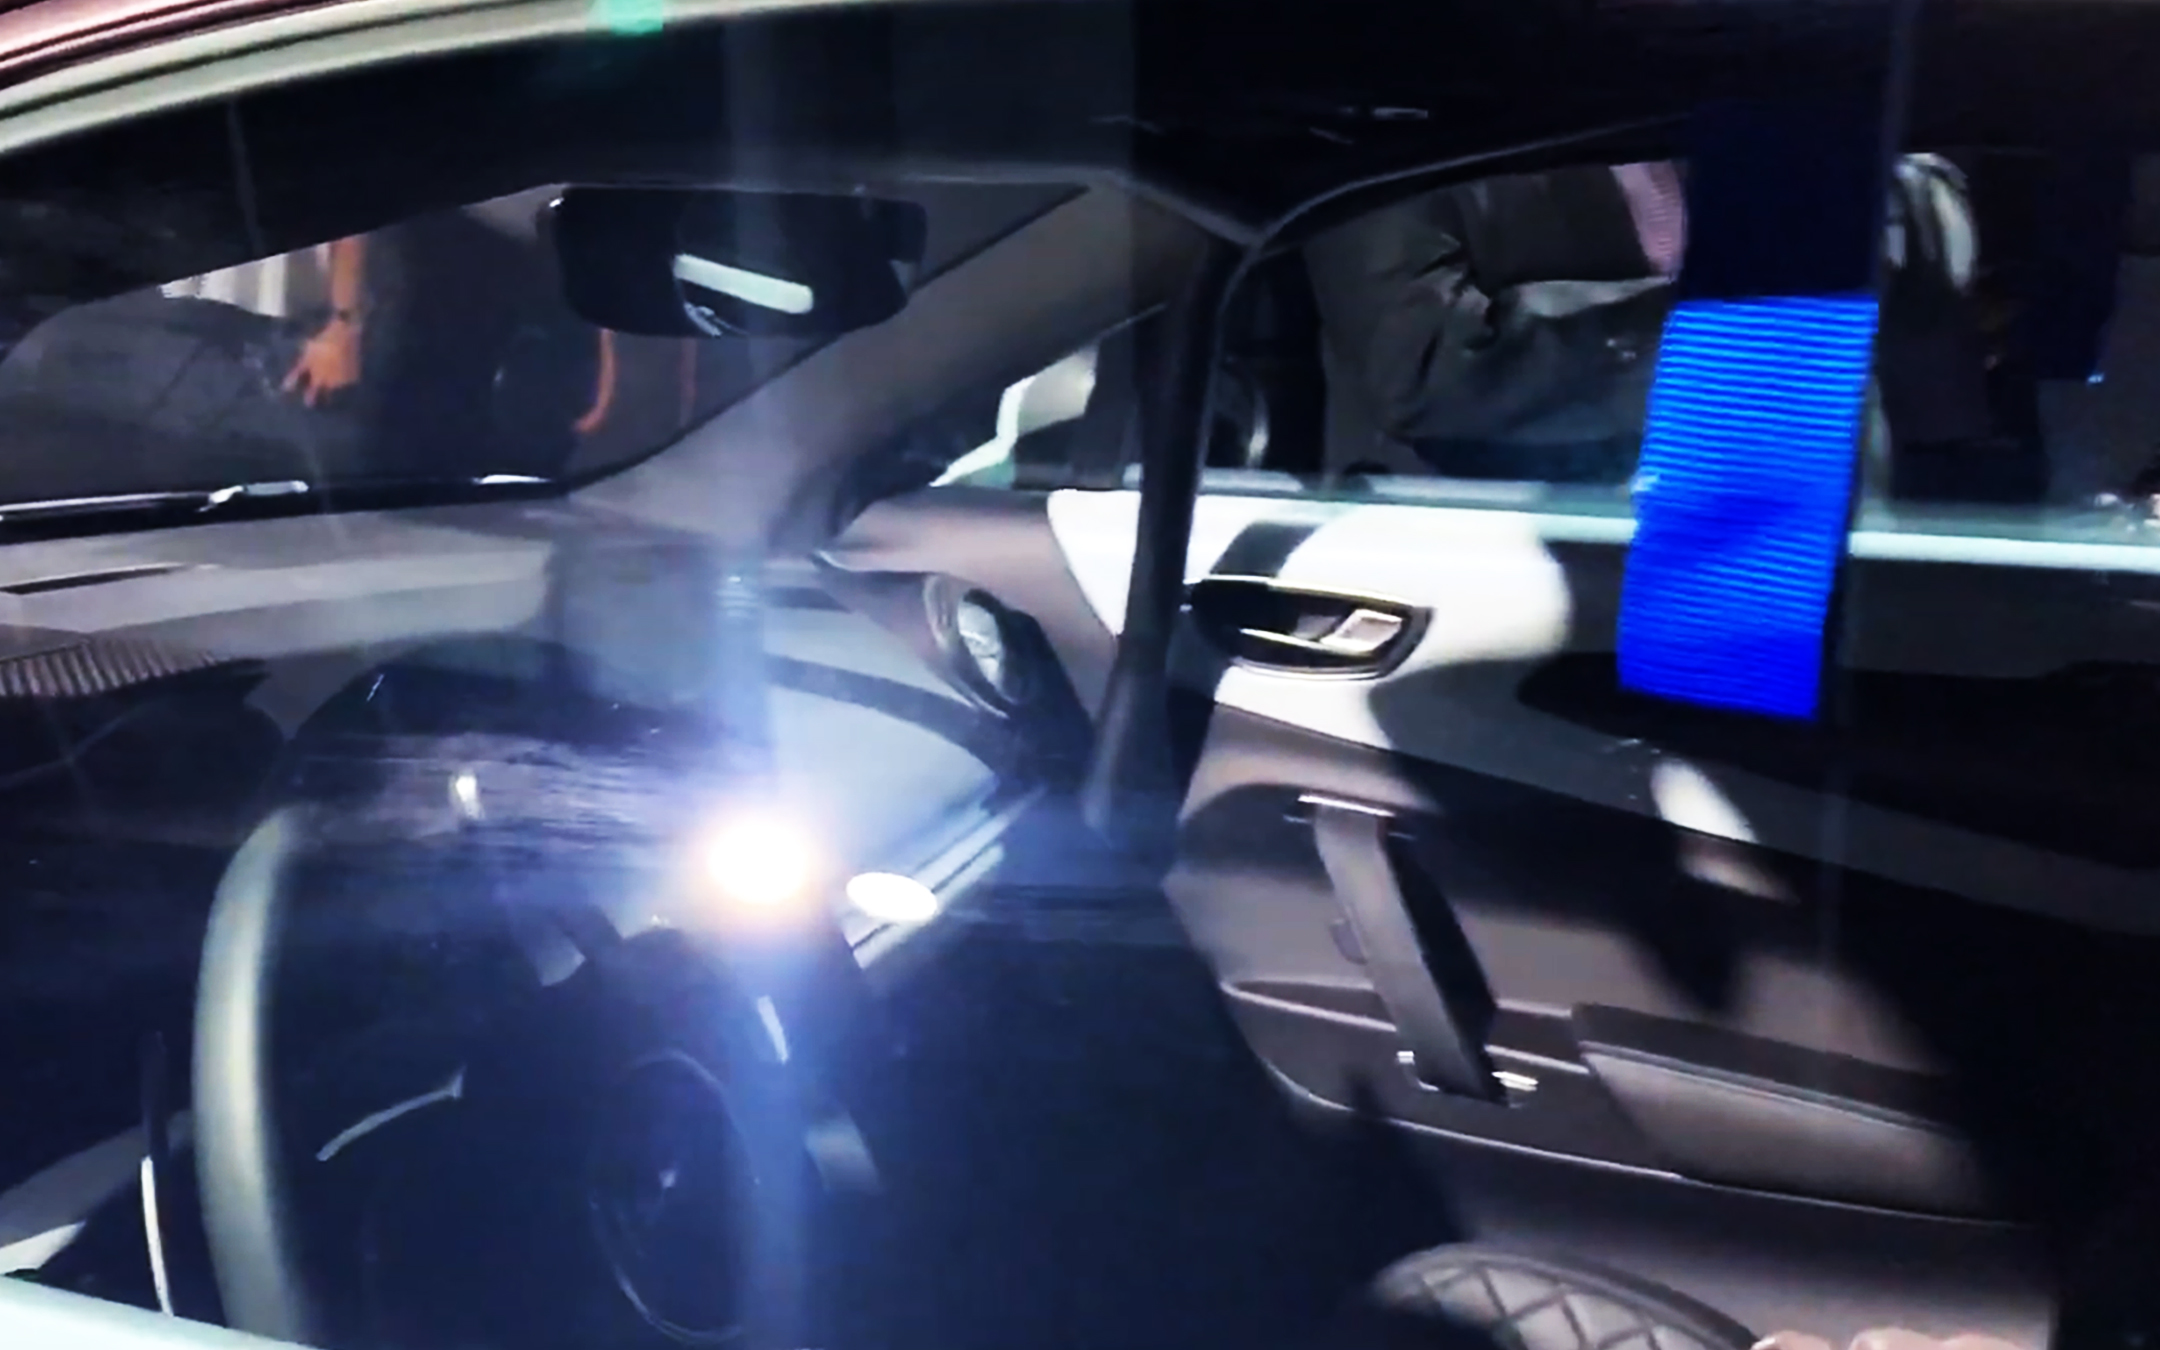 Alpine A110 Sports X - 2020 - interior / intérieur - preview - showcar - photo screen video - FAI2020